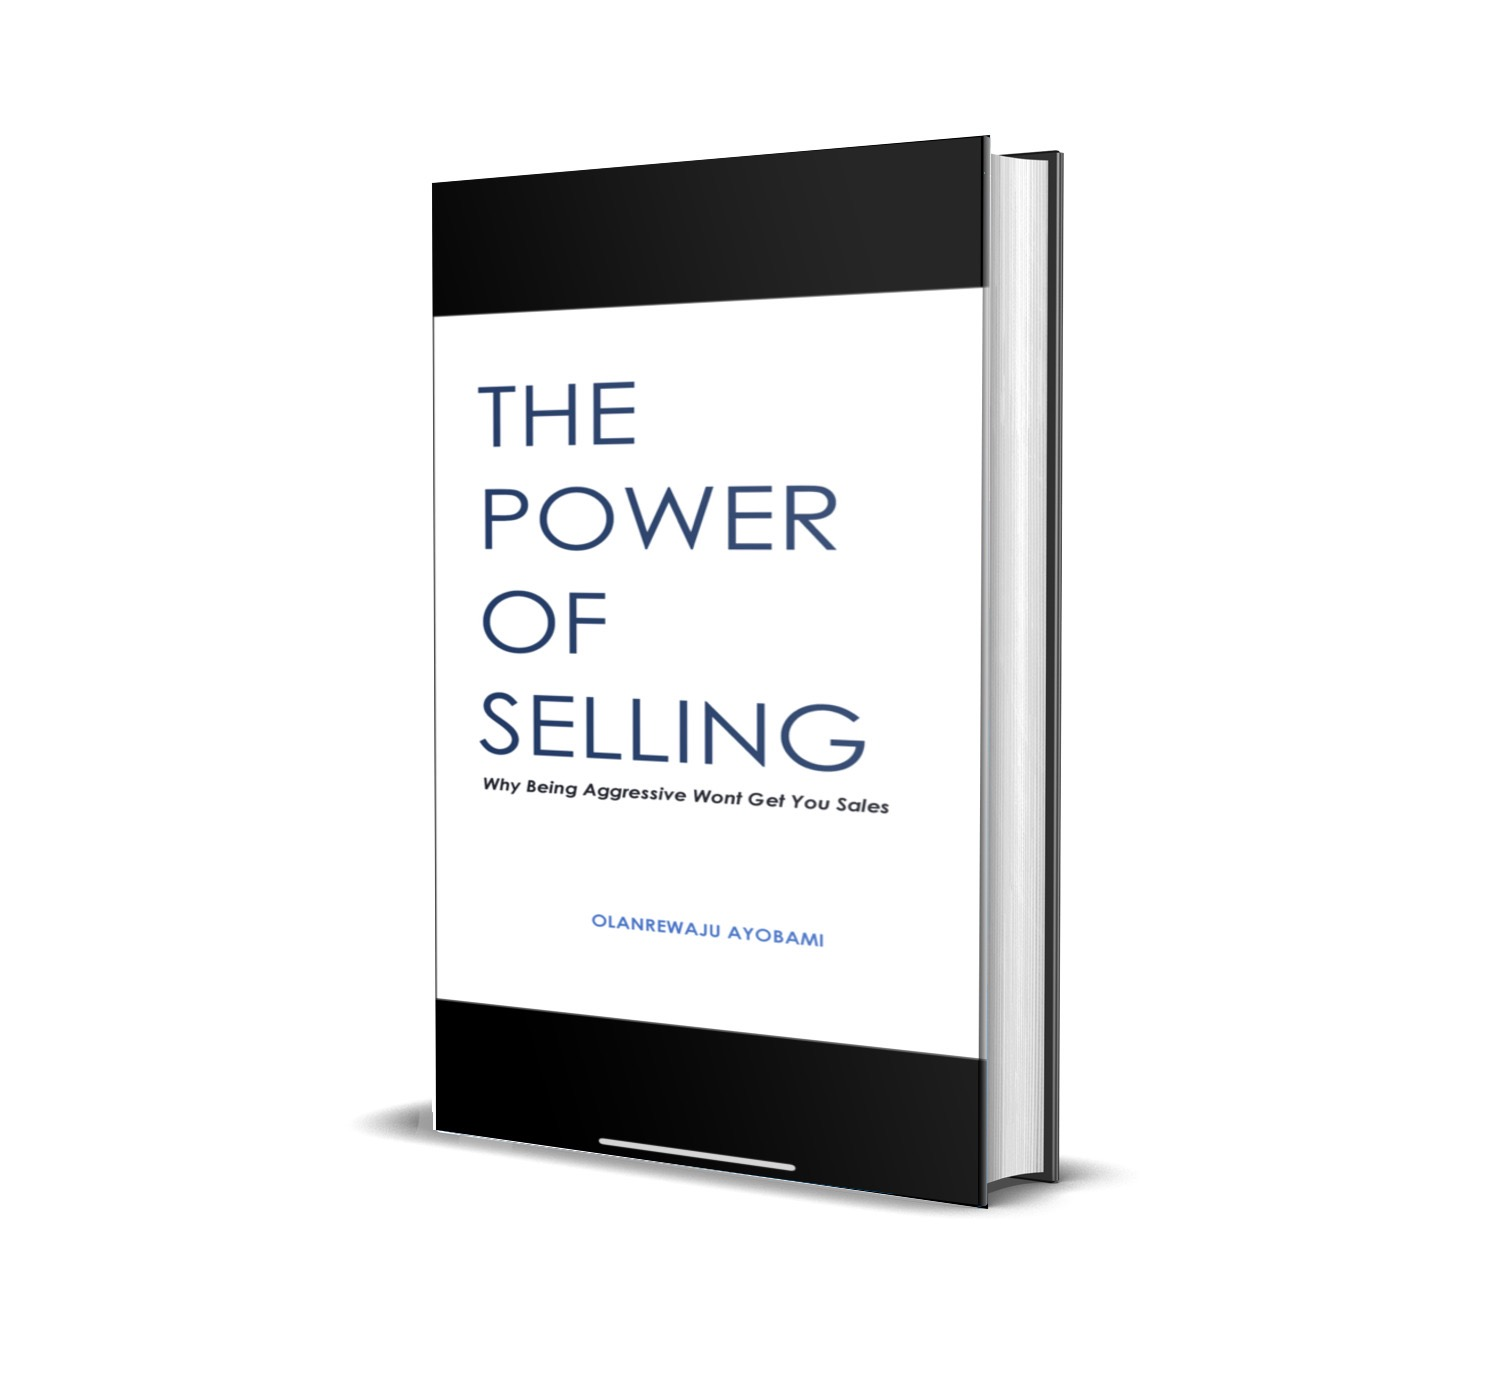 The Power of selling: why being aggressive won't get you sales